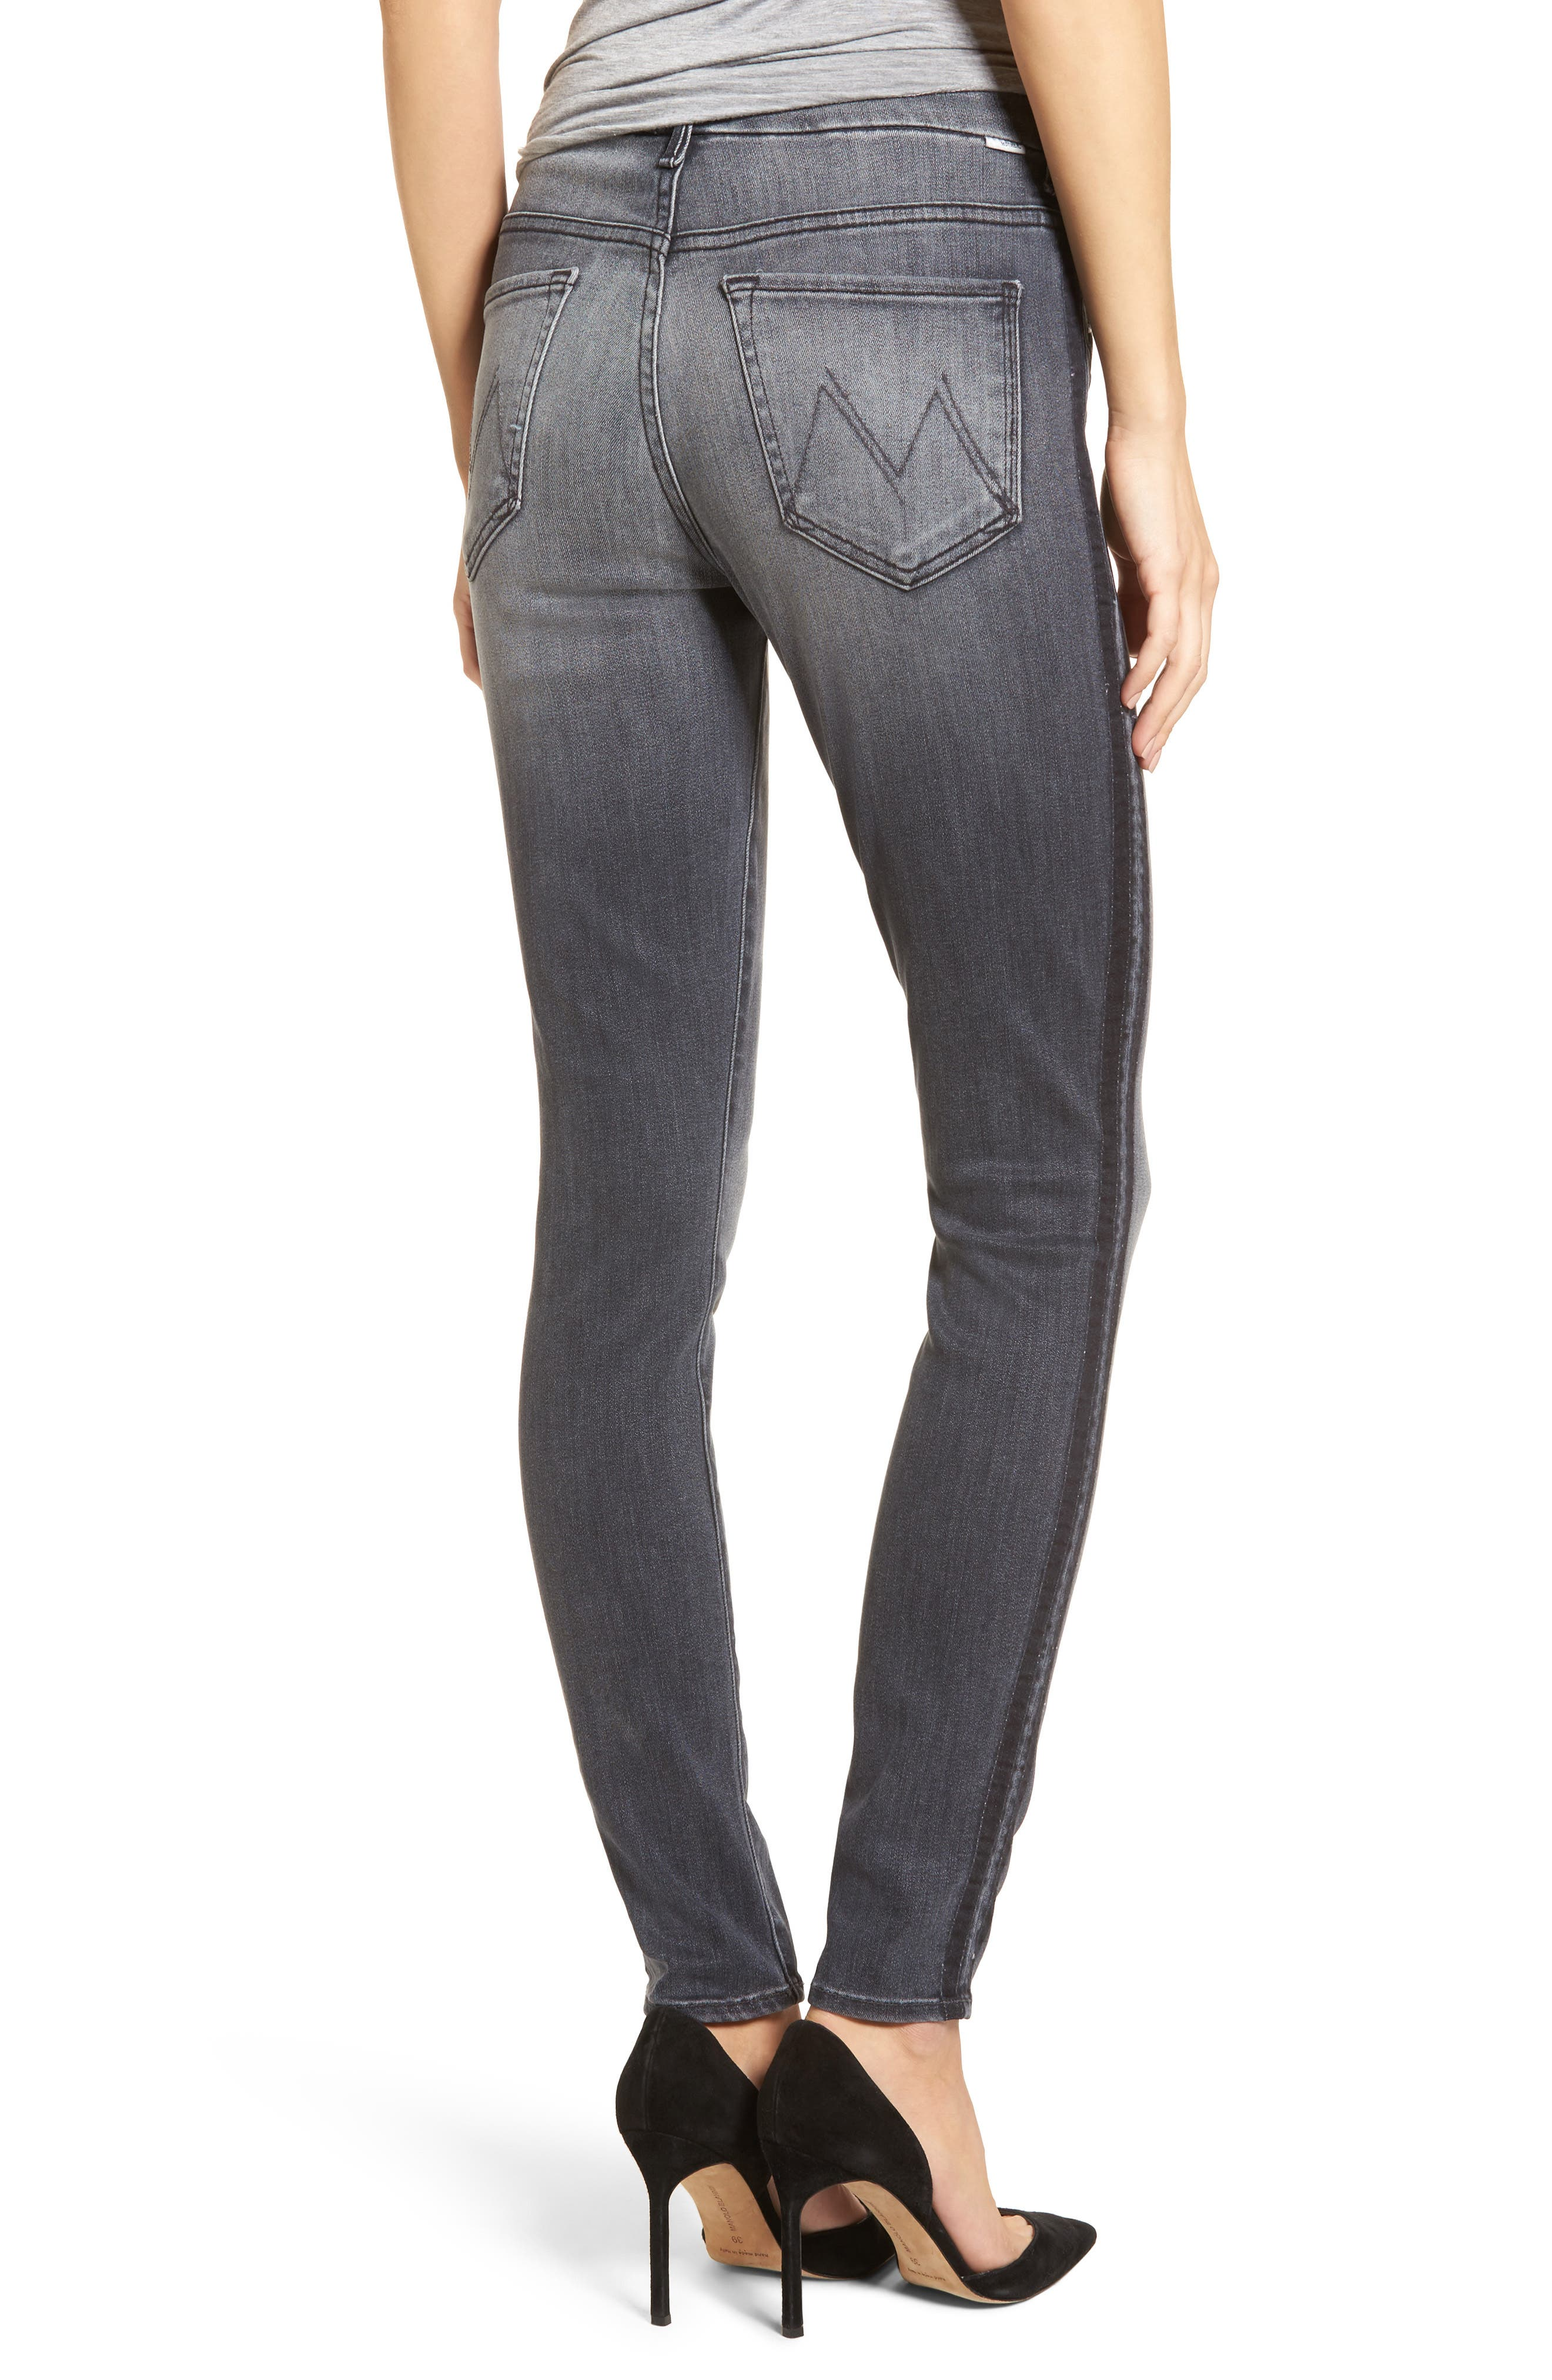 The Looker High Waist Skinny Jeans,                             Alternate thumbnail 2, color,                             Miss Moody Two Shoes Racer